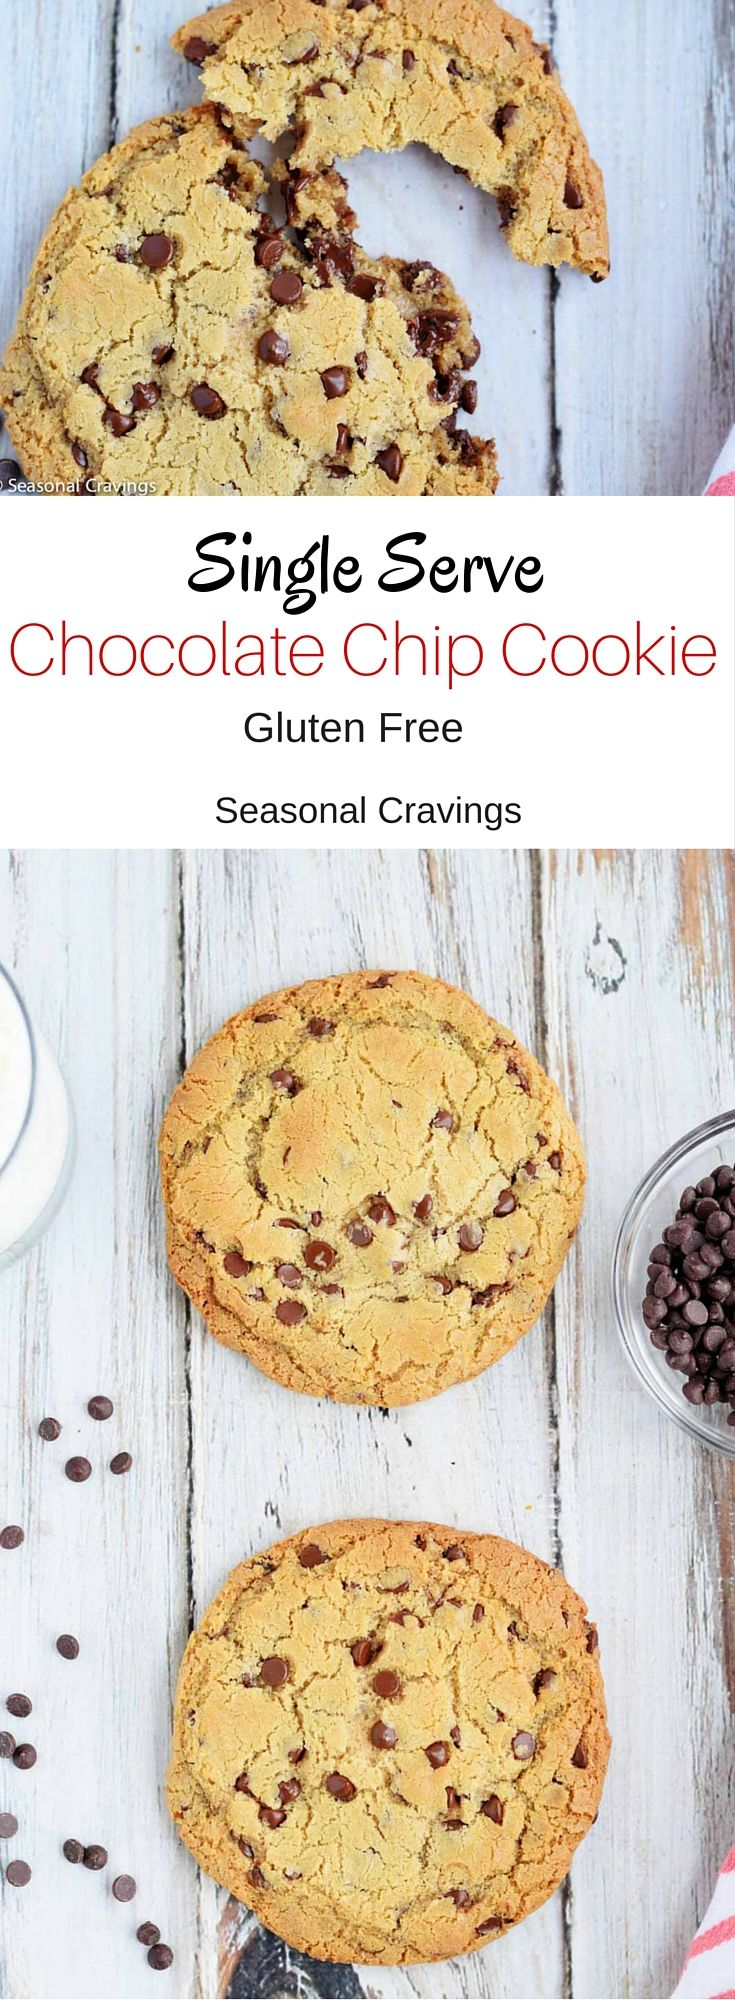 Single Serve Chocolate Chip Cookie - This gluten free chocolate chip cookie is the best cookie ever.  And you don't have to worry about overeating.  It's a win, win!